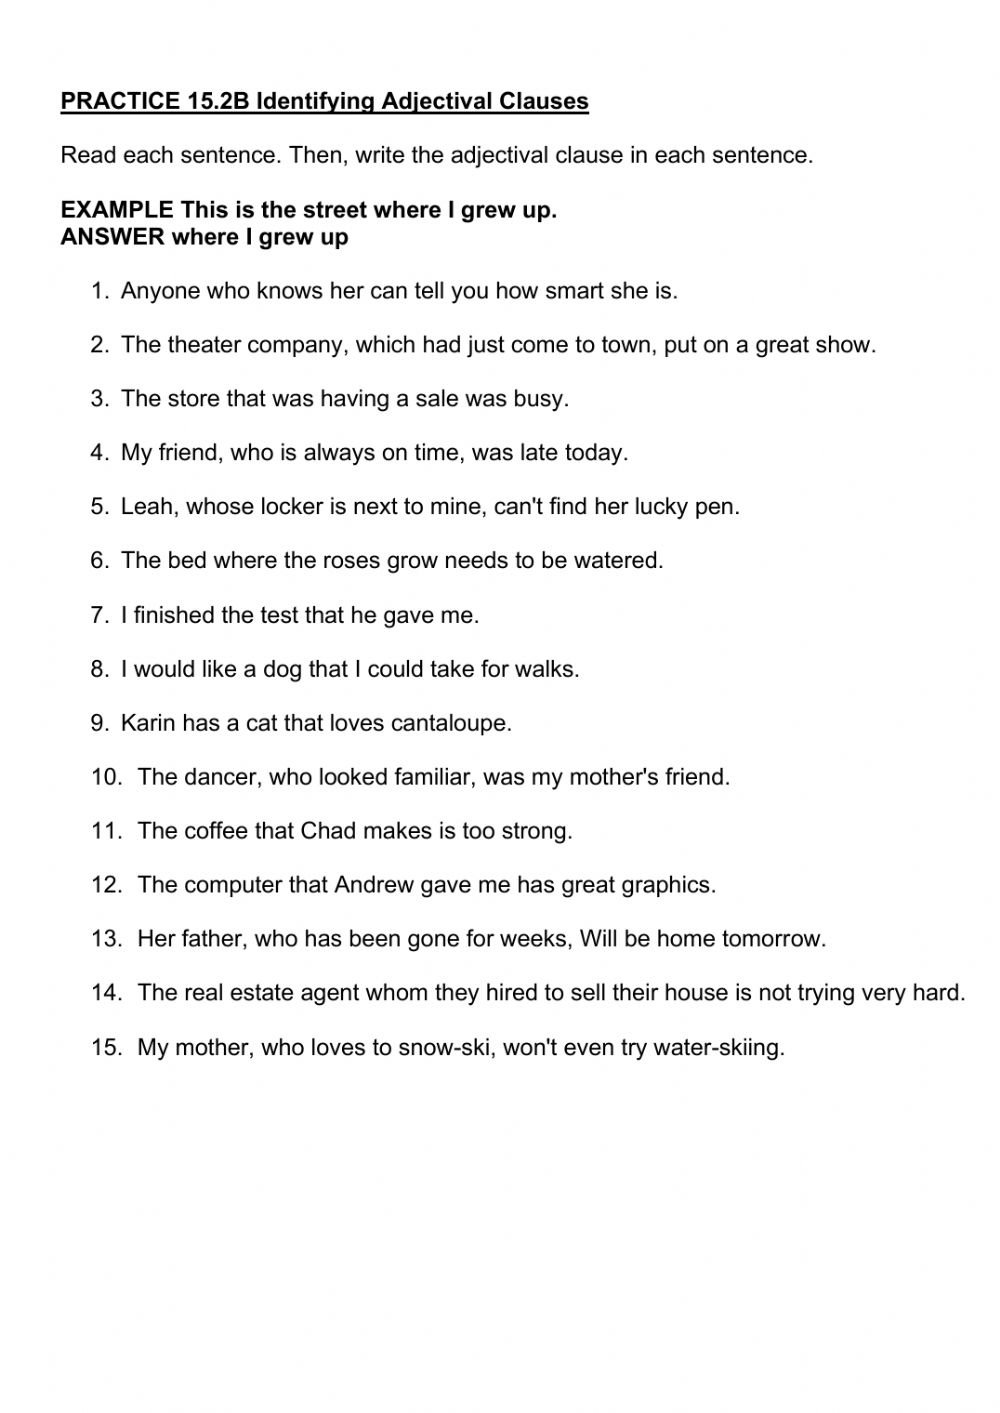 medium resolution of PRACTICE 15.2B Identifying Adjectival Clauses worksheet